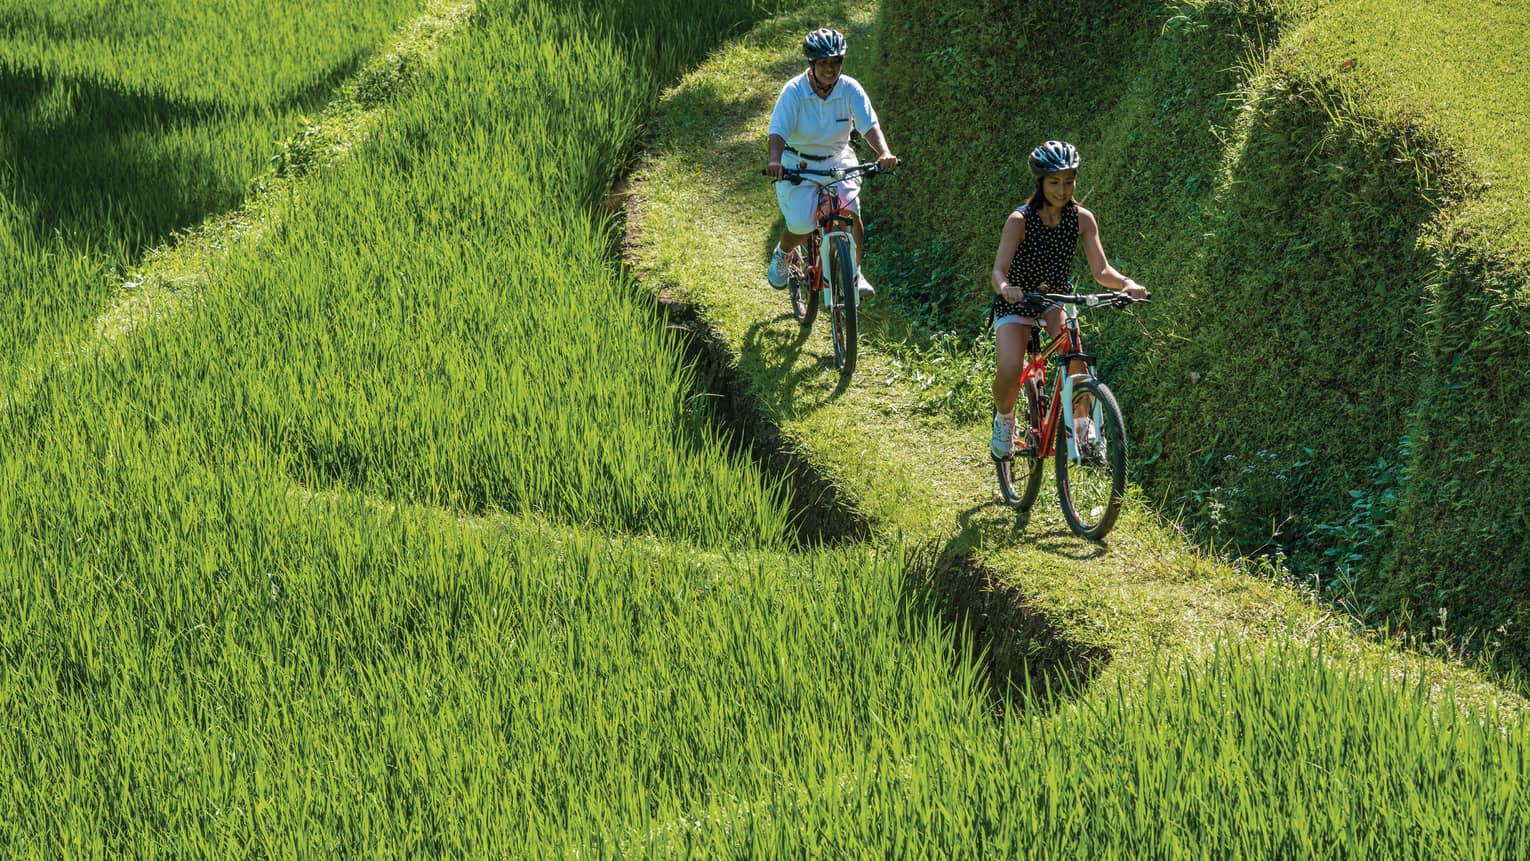 Smiling man and woman on red bicycles, wearing helmets ride along green path is grassy rice field